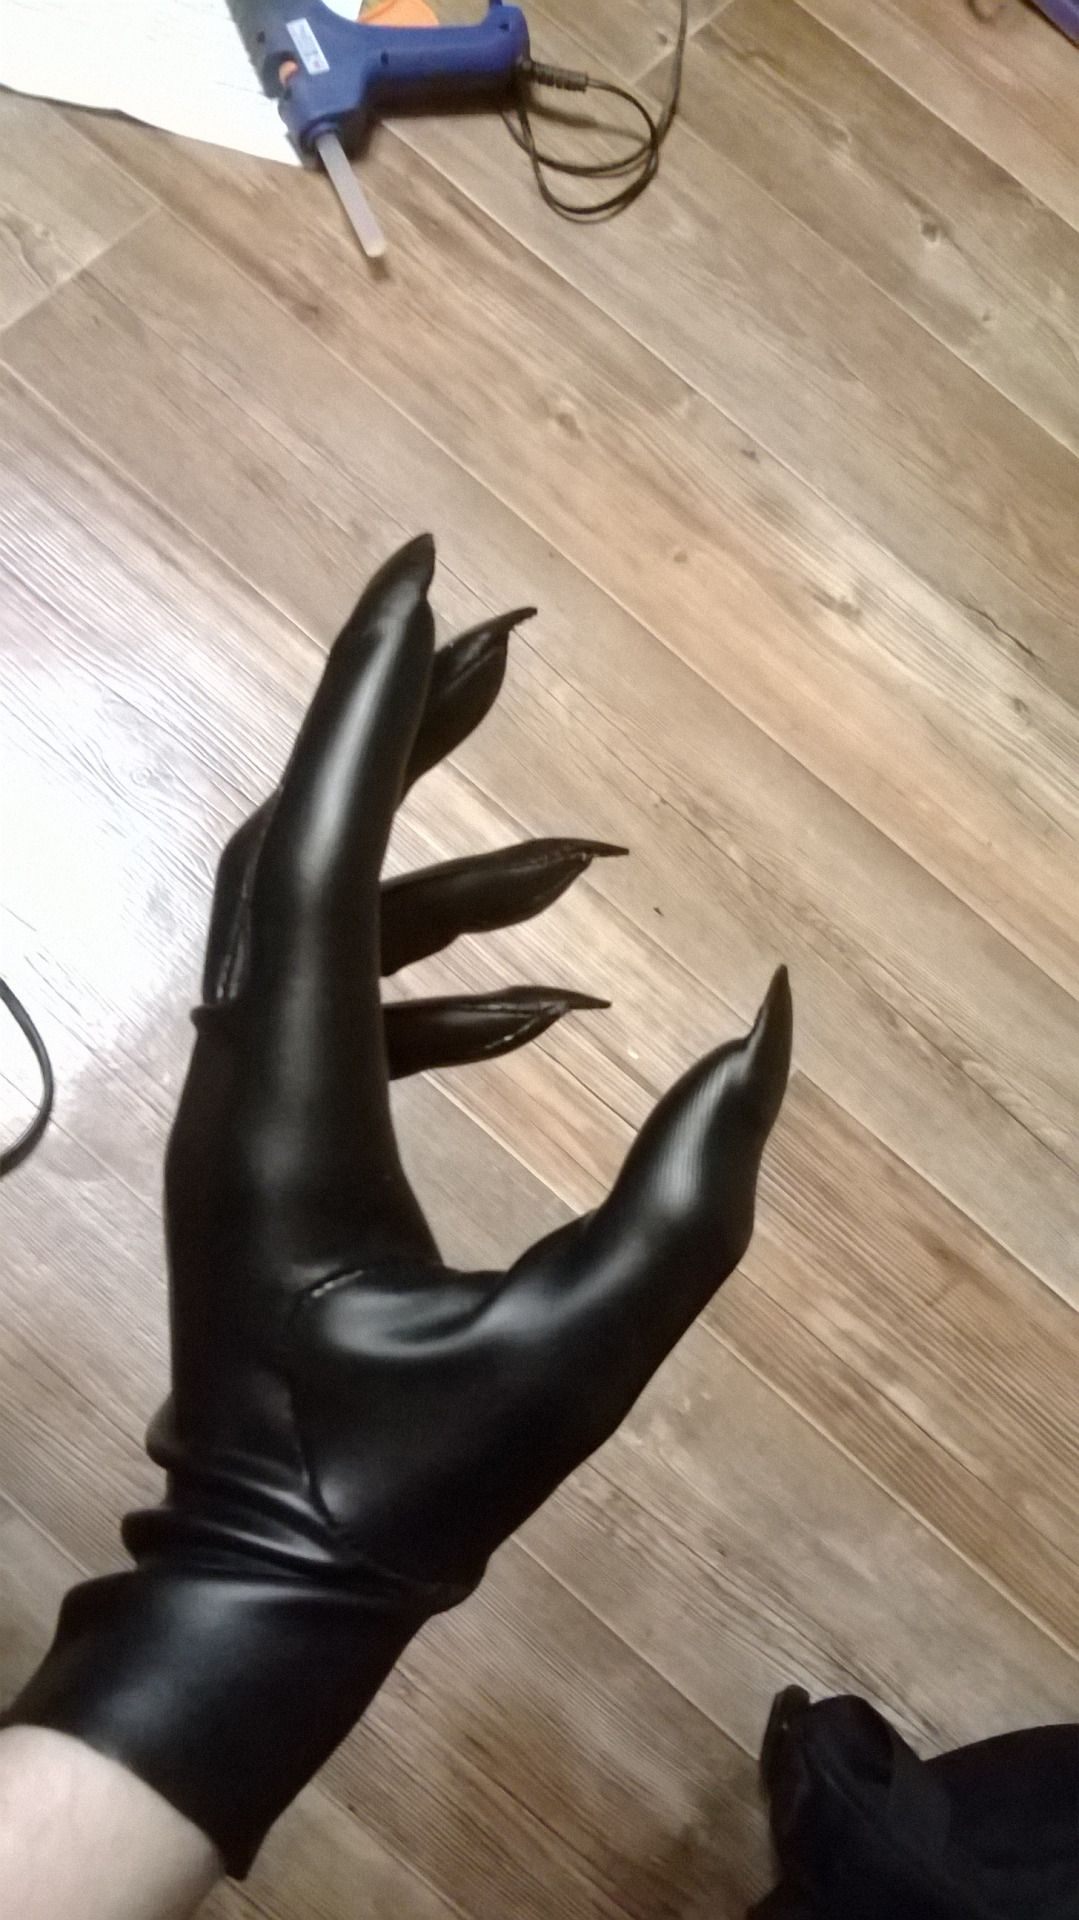 Black gloves with nails - I Got Many Questions About The Gloves And Nails So I Tried To Create A Little Tutorial I Use Basic Patterns For Gloves But Made The Fingertips Longer